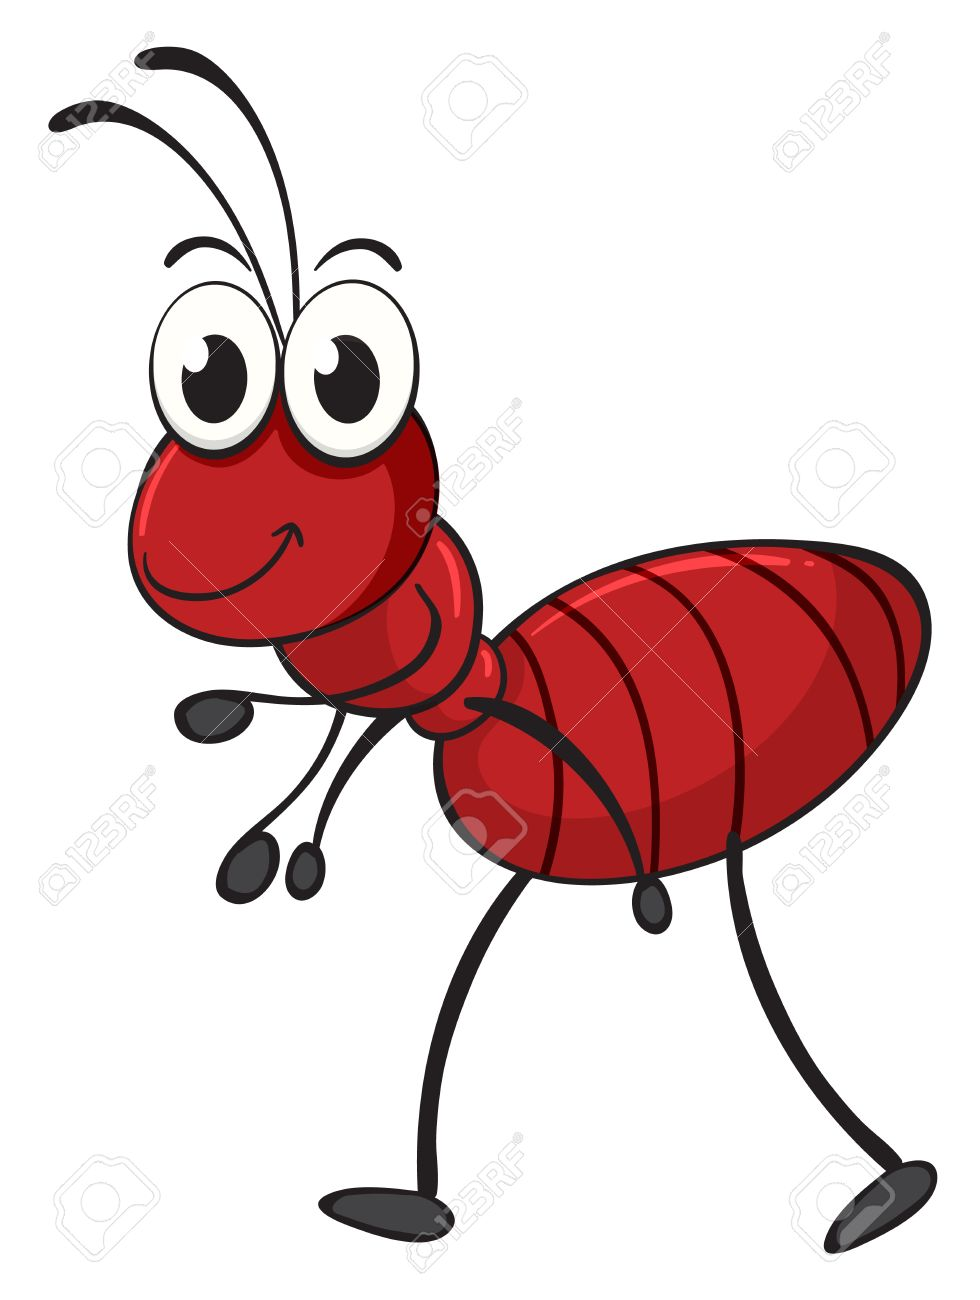 illustration of an ant on a white background royalty free cliparts